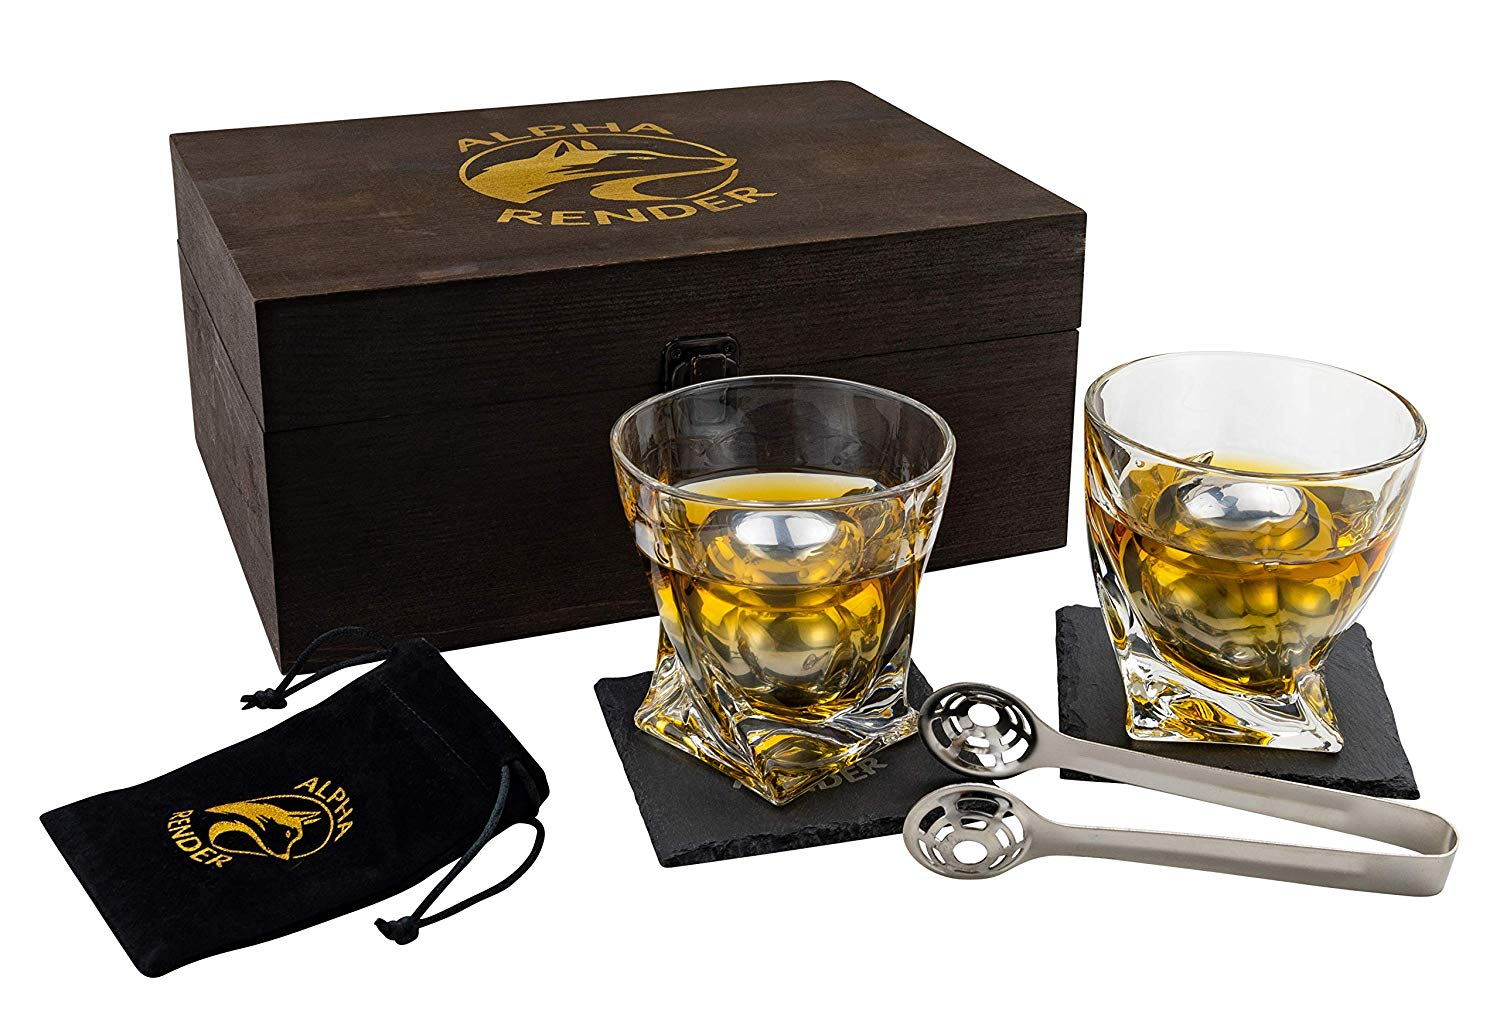 PREMIUM WHISKEY DRINK SET BY ALPHA RENDER- 2 XL KING SIZED CHILLER BALLS, 2 11OZ TWIST GLASSES, SPECIAL ROUND TONGS, PINE WOODEN BOX, GIFT FOR MEN, DAD, HUSBAND, GRANDPA, BOYFRIEND, OR ANNIVERSARY.